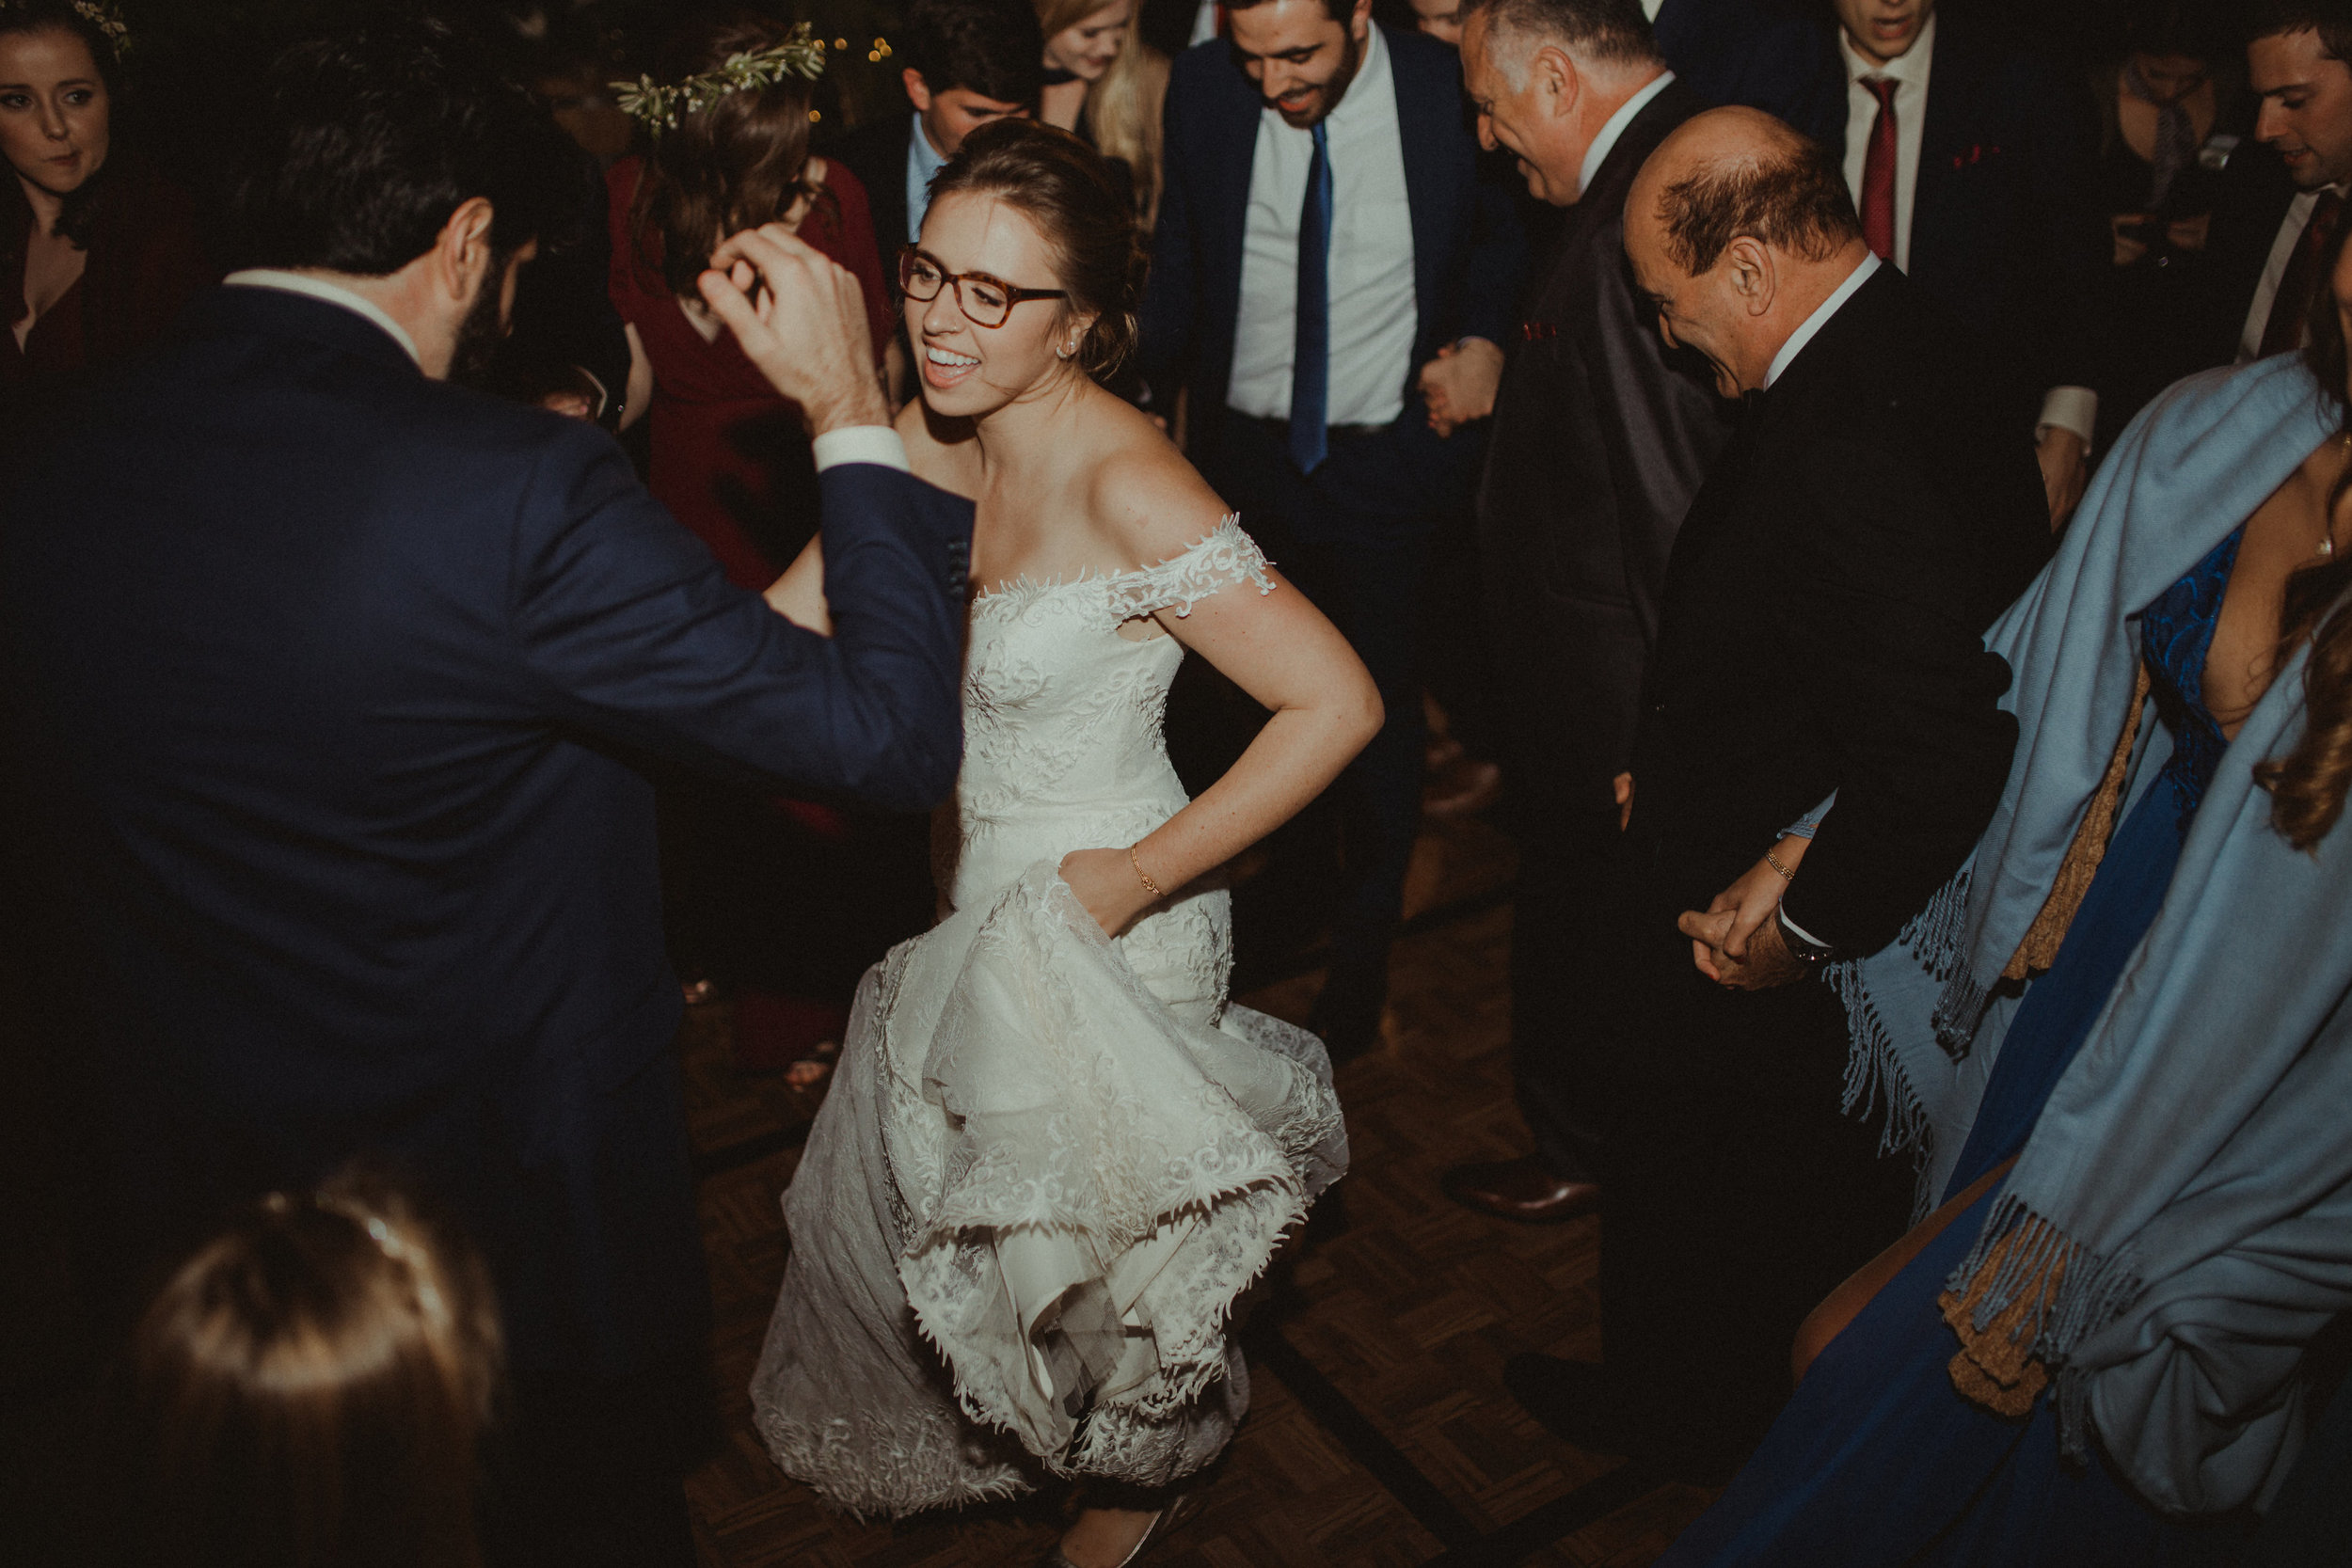 Dancing the night away at their Wedding Reception